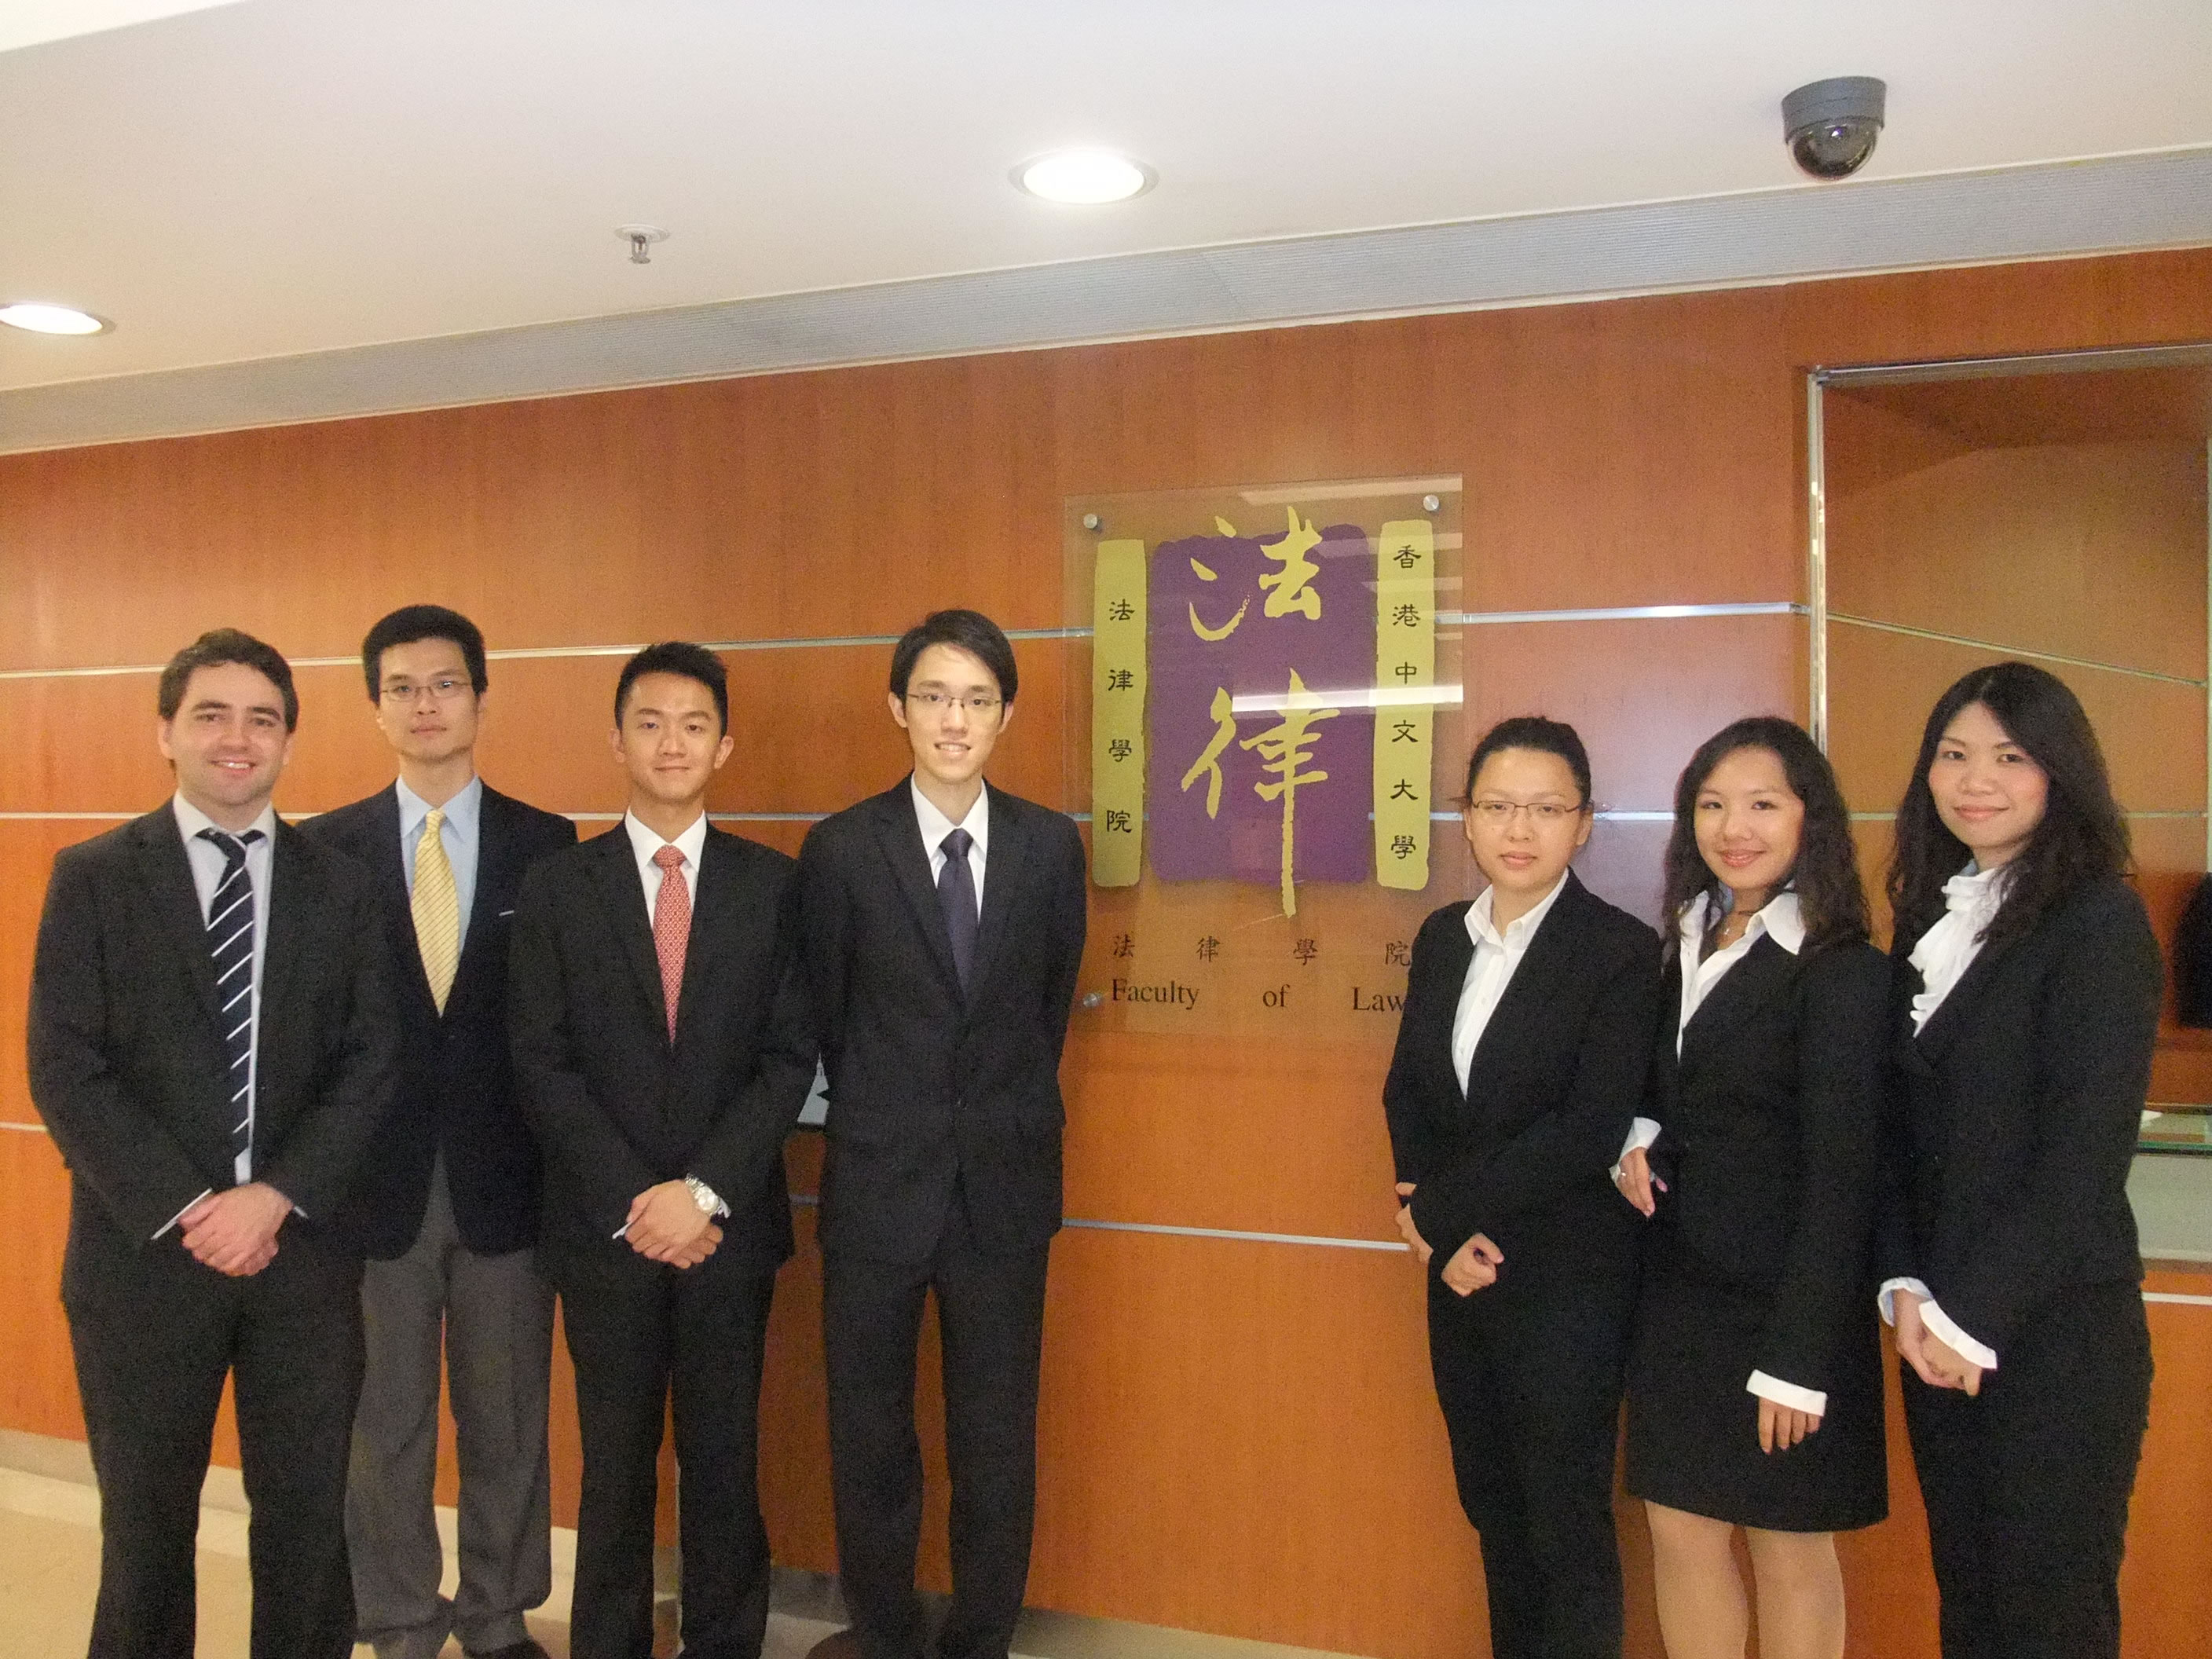 The CUHK team represented Hong Kong at the Jessup International Law Moot Court Competition held in Washington, D.C.